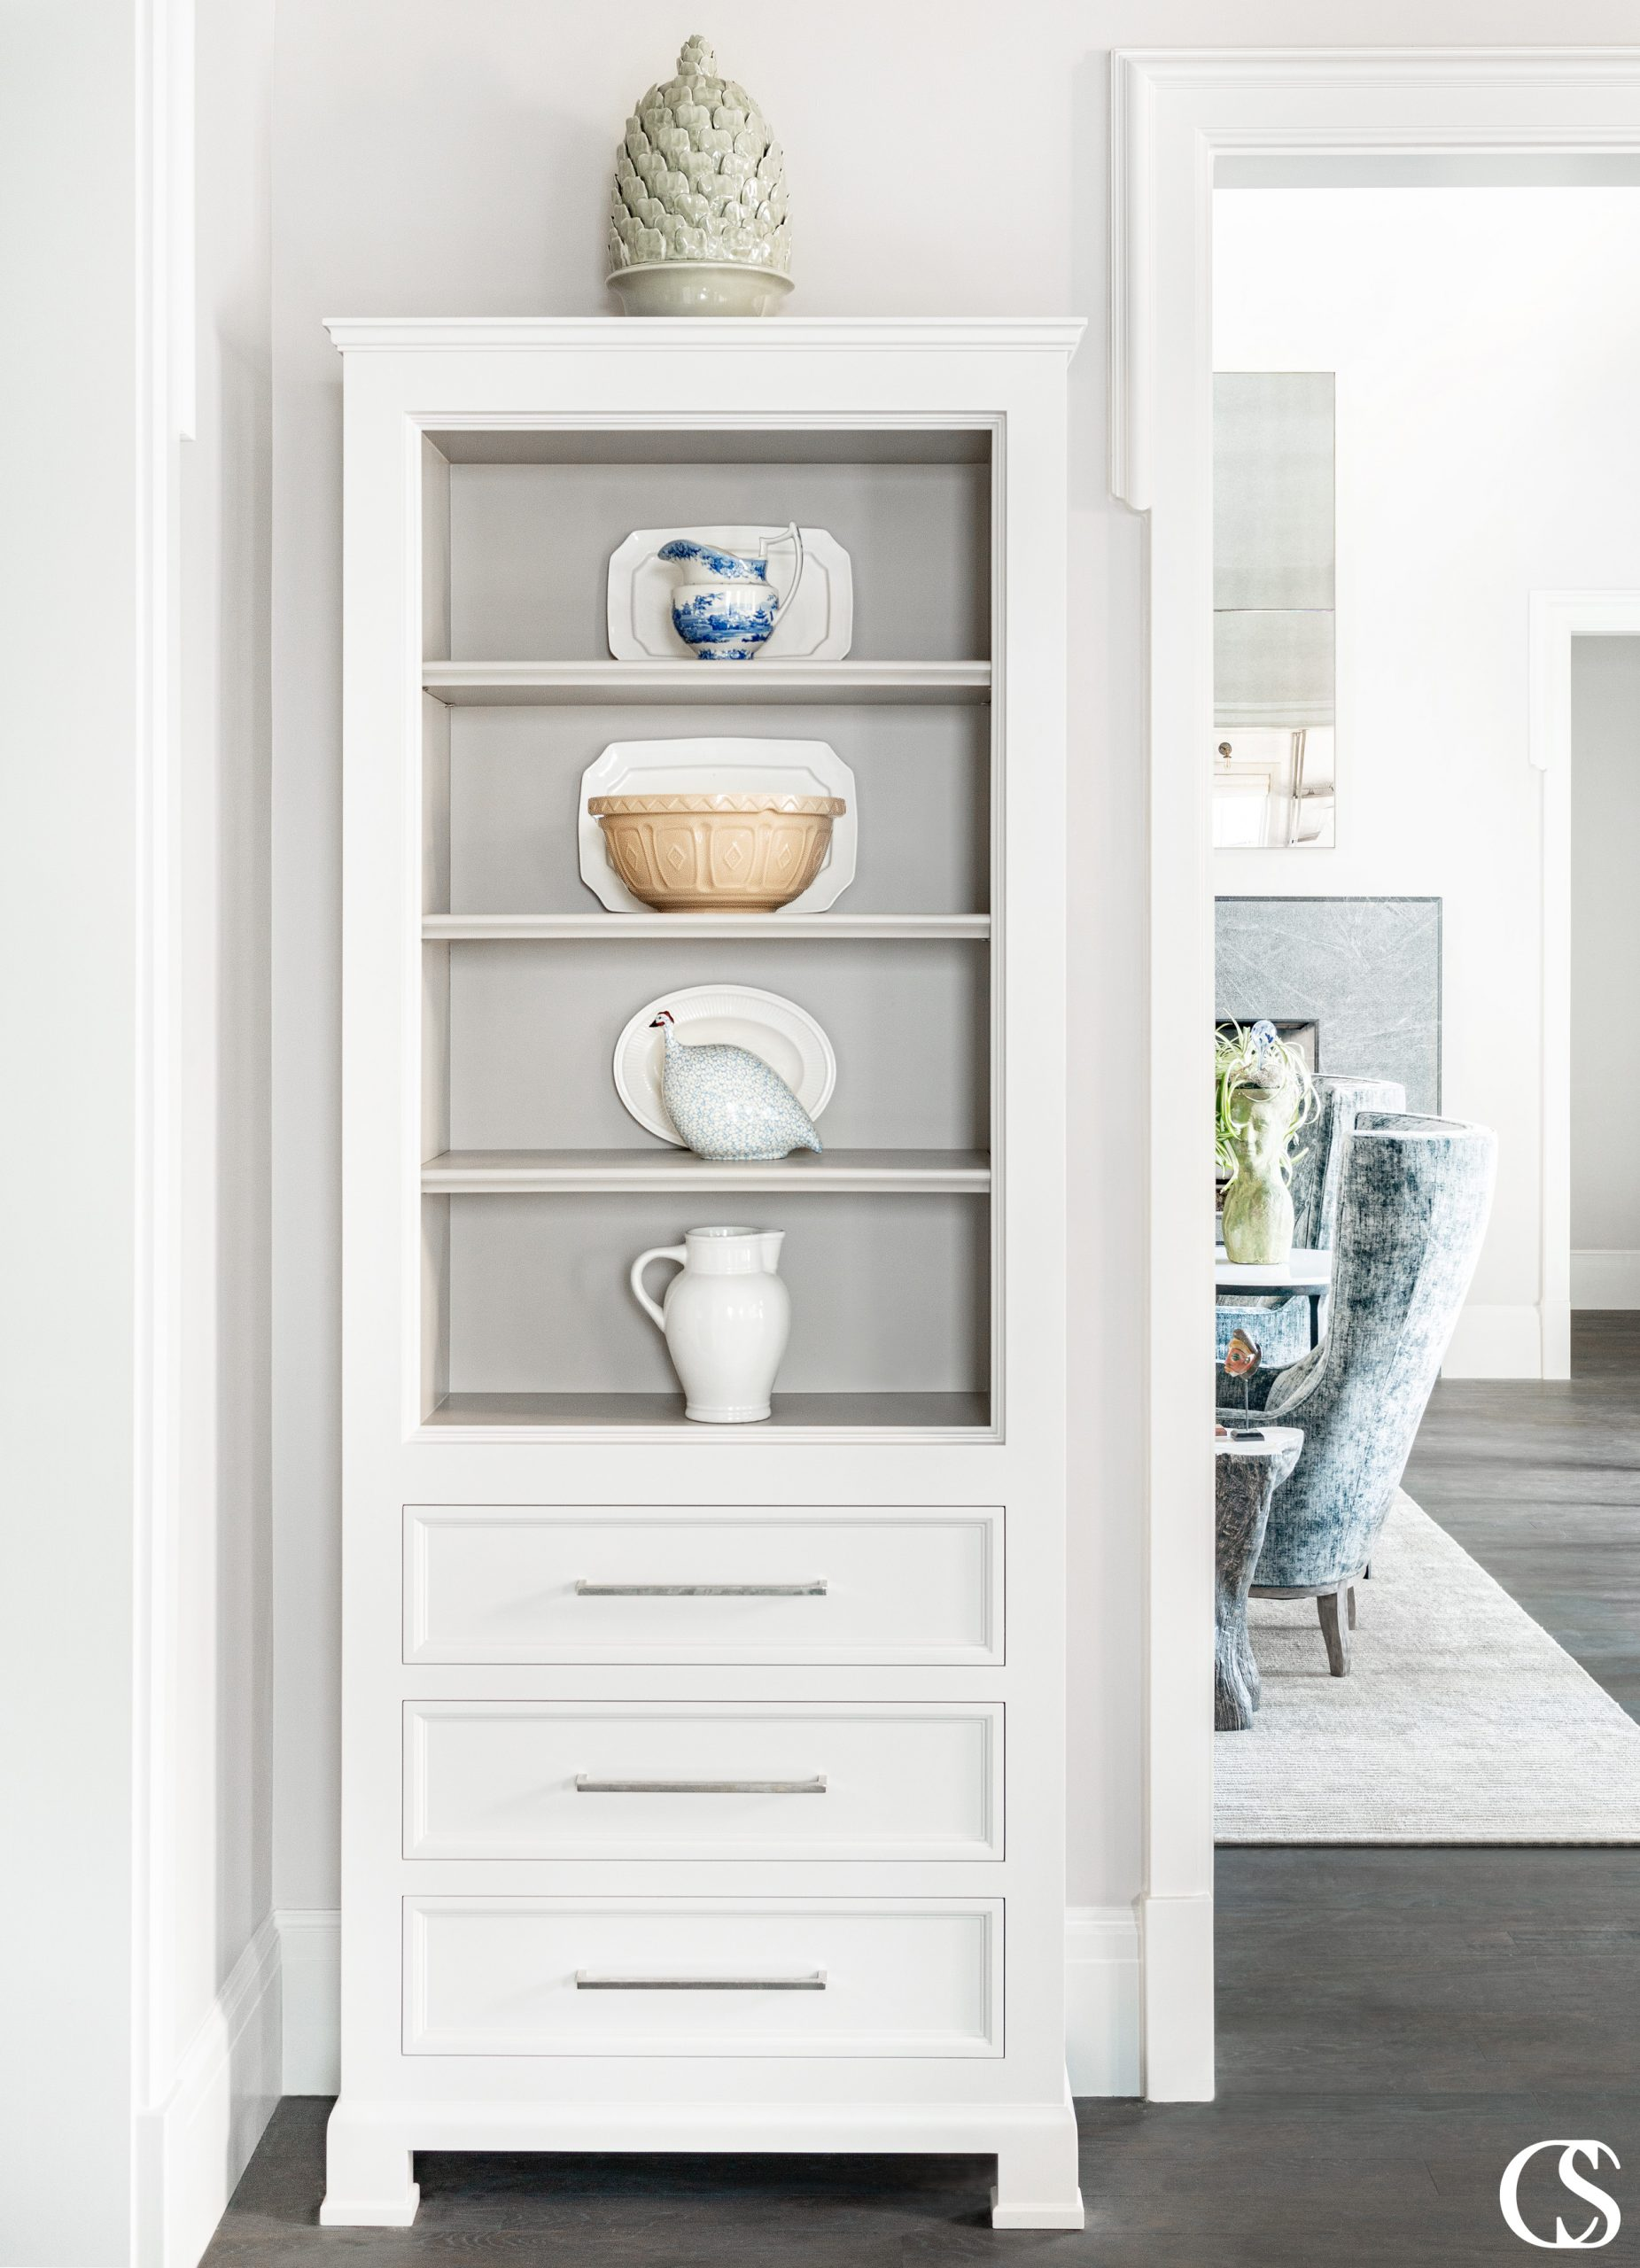 We leave no corner of our custom kitchens unturned. Even in the space between two doorways, there is room to add storage and bring the space to life.